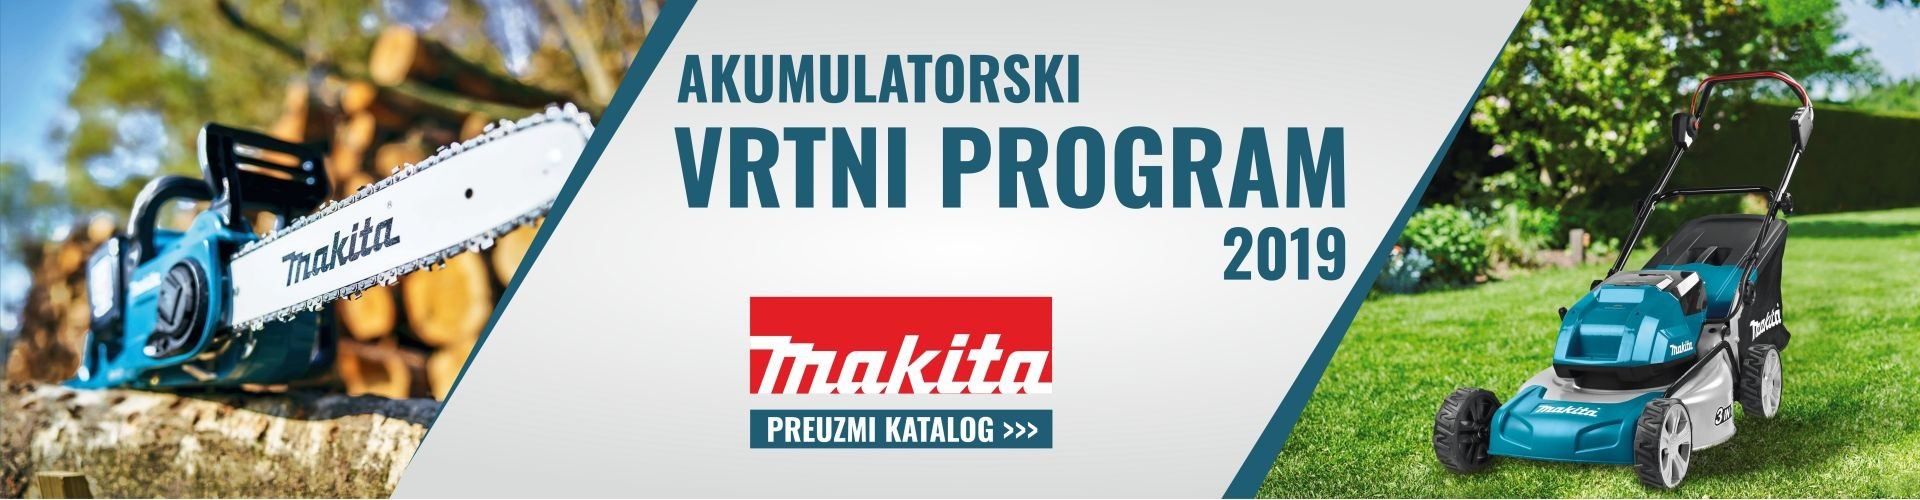 AKU VRTNI PROGRAM 2019 MAKITA